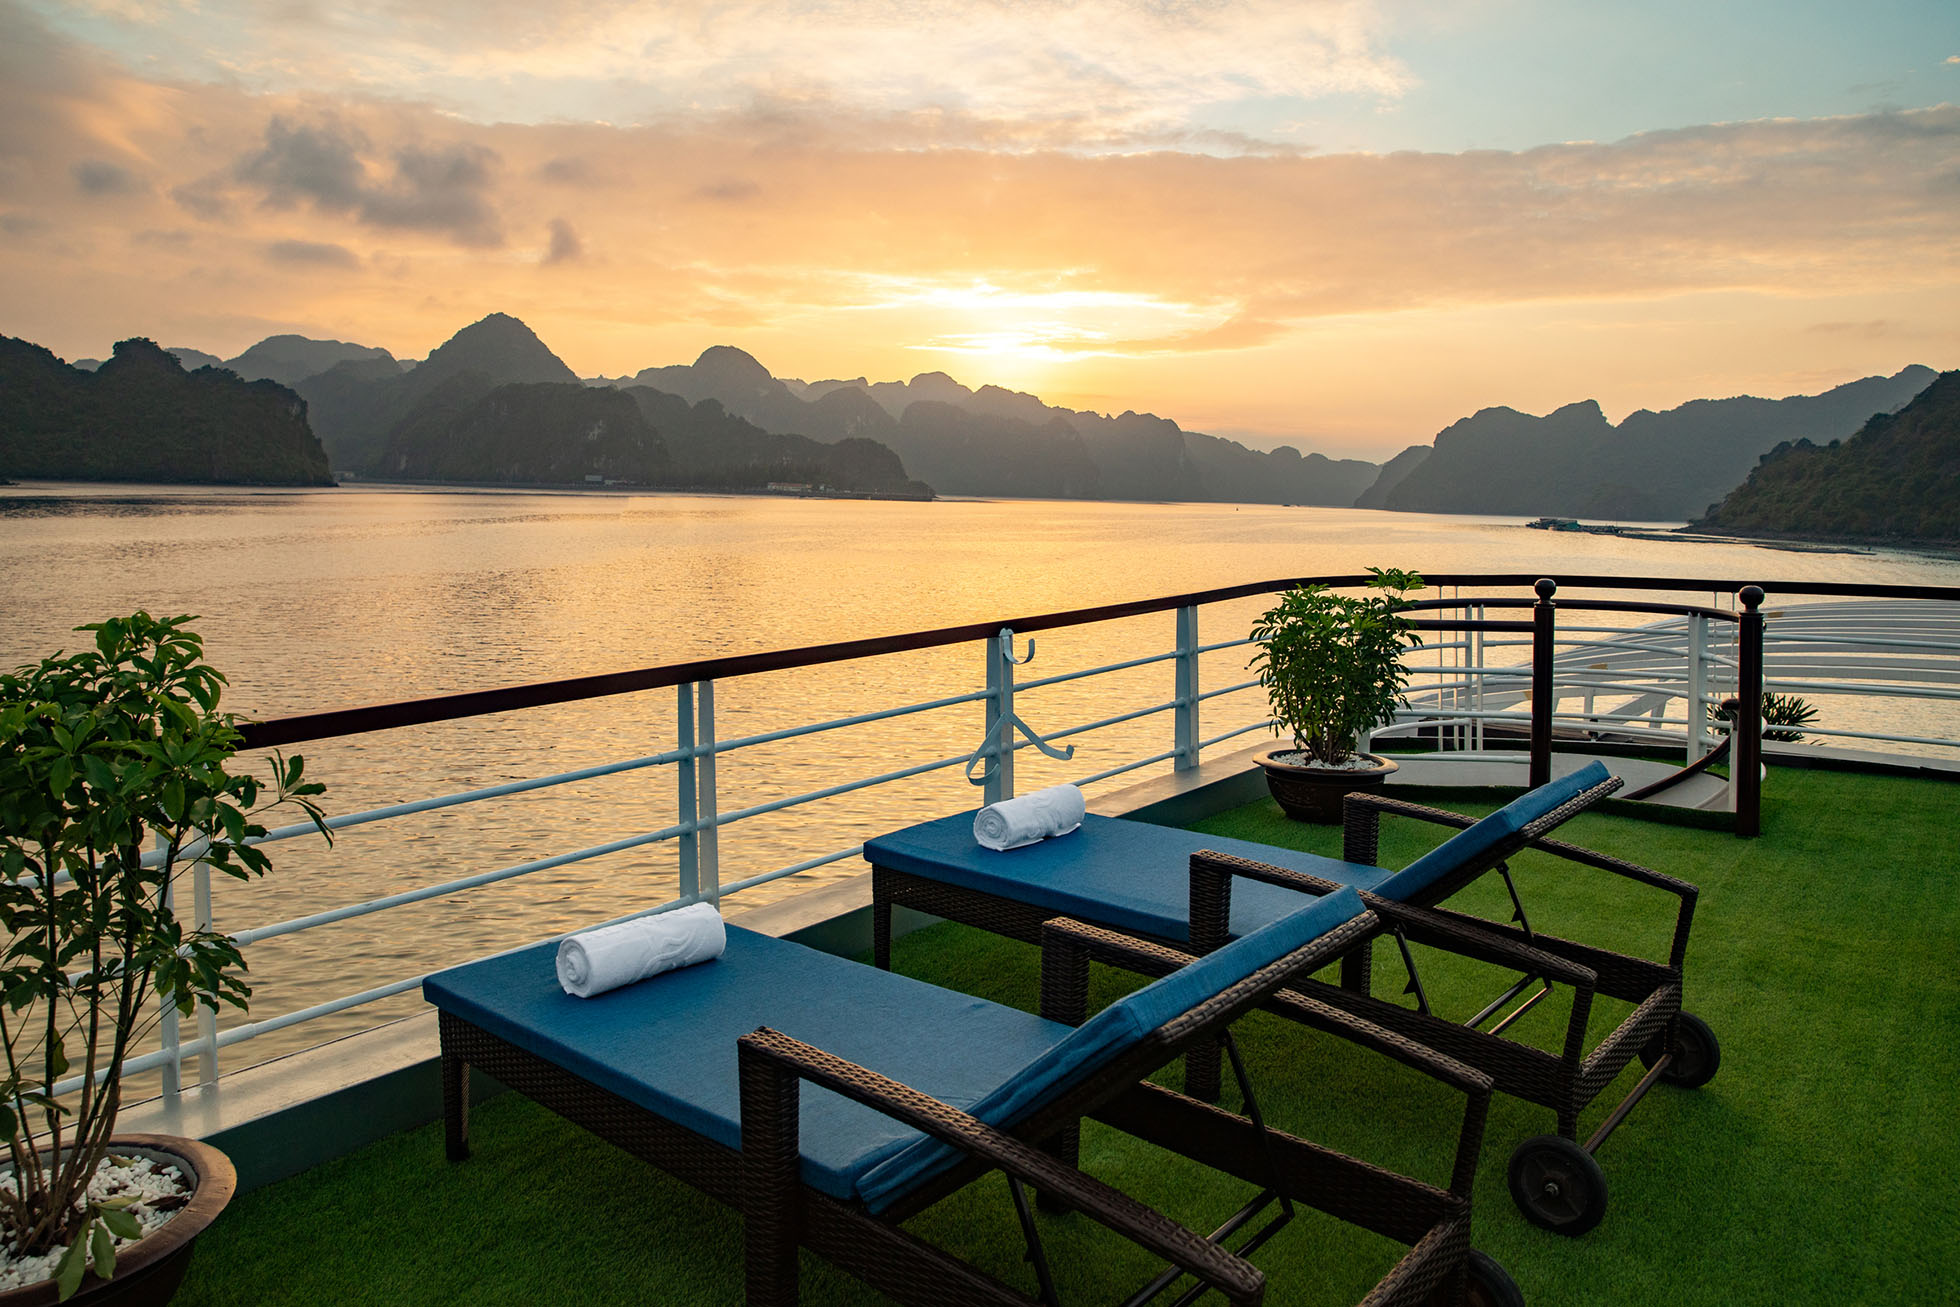 Halong Bay 1 day tour from Hanoi by Cruises 5